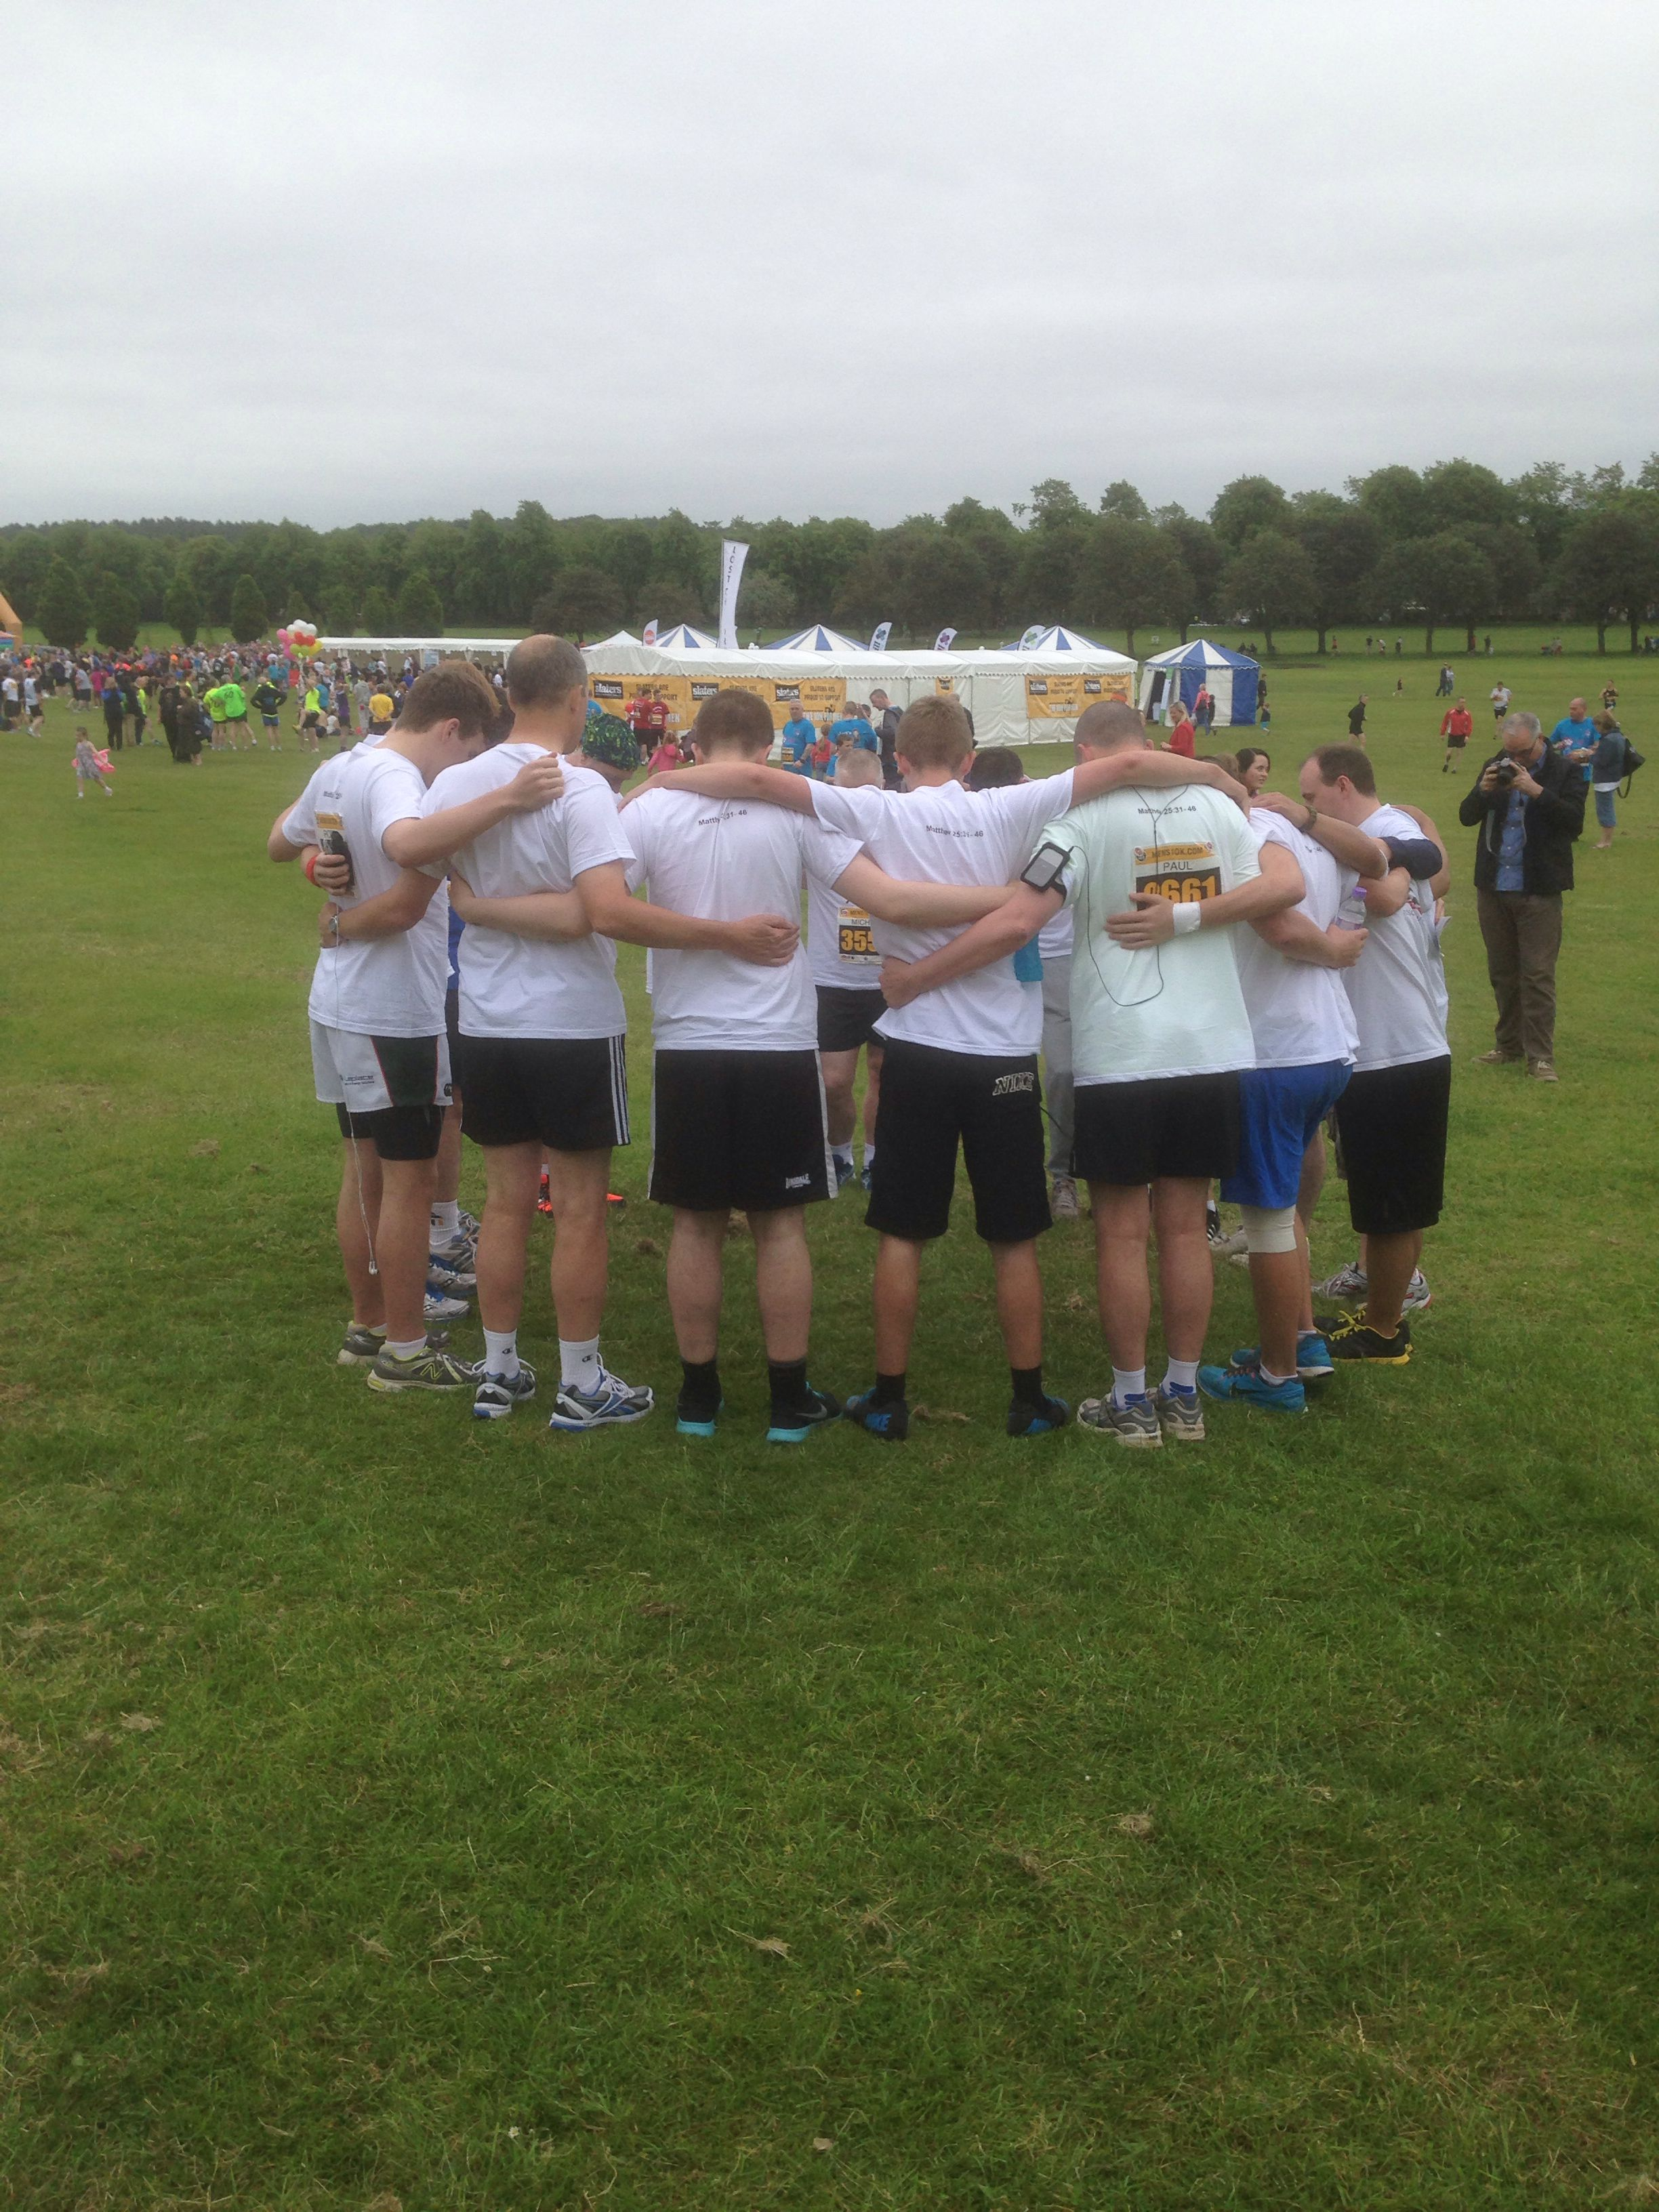 Team Ally - last minute thoughts & a wee prayer before the 10K